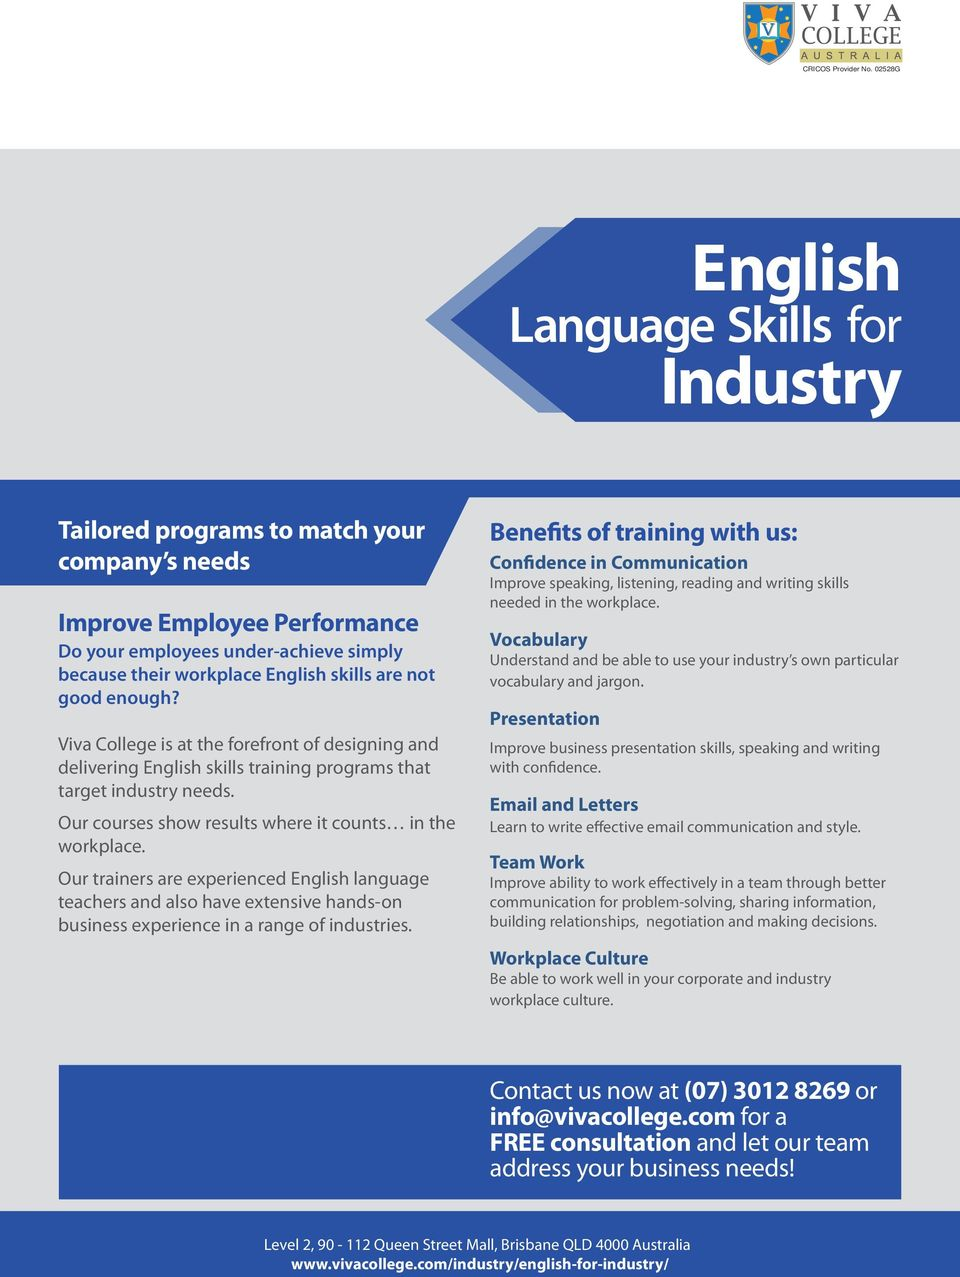 Our trainers are experienced English language teachers and also have extensive hands-on business experience in a range of industries.